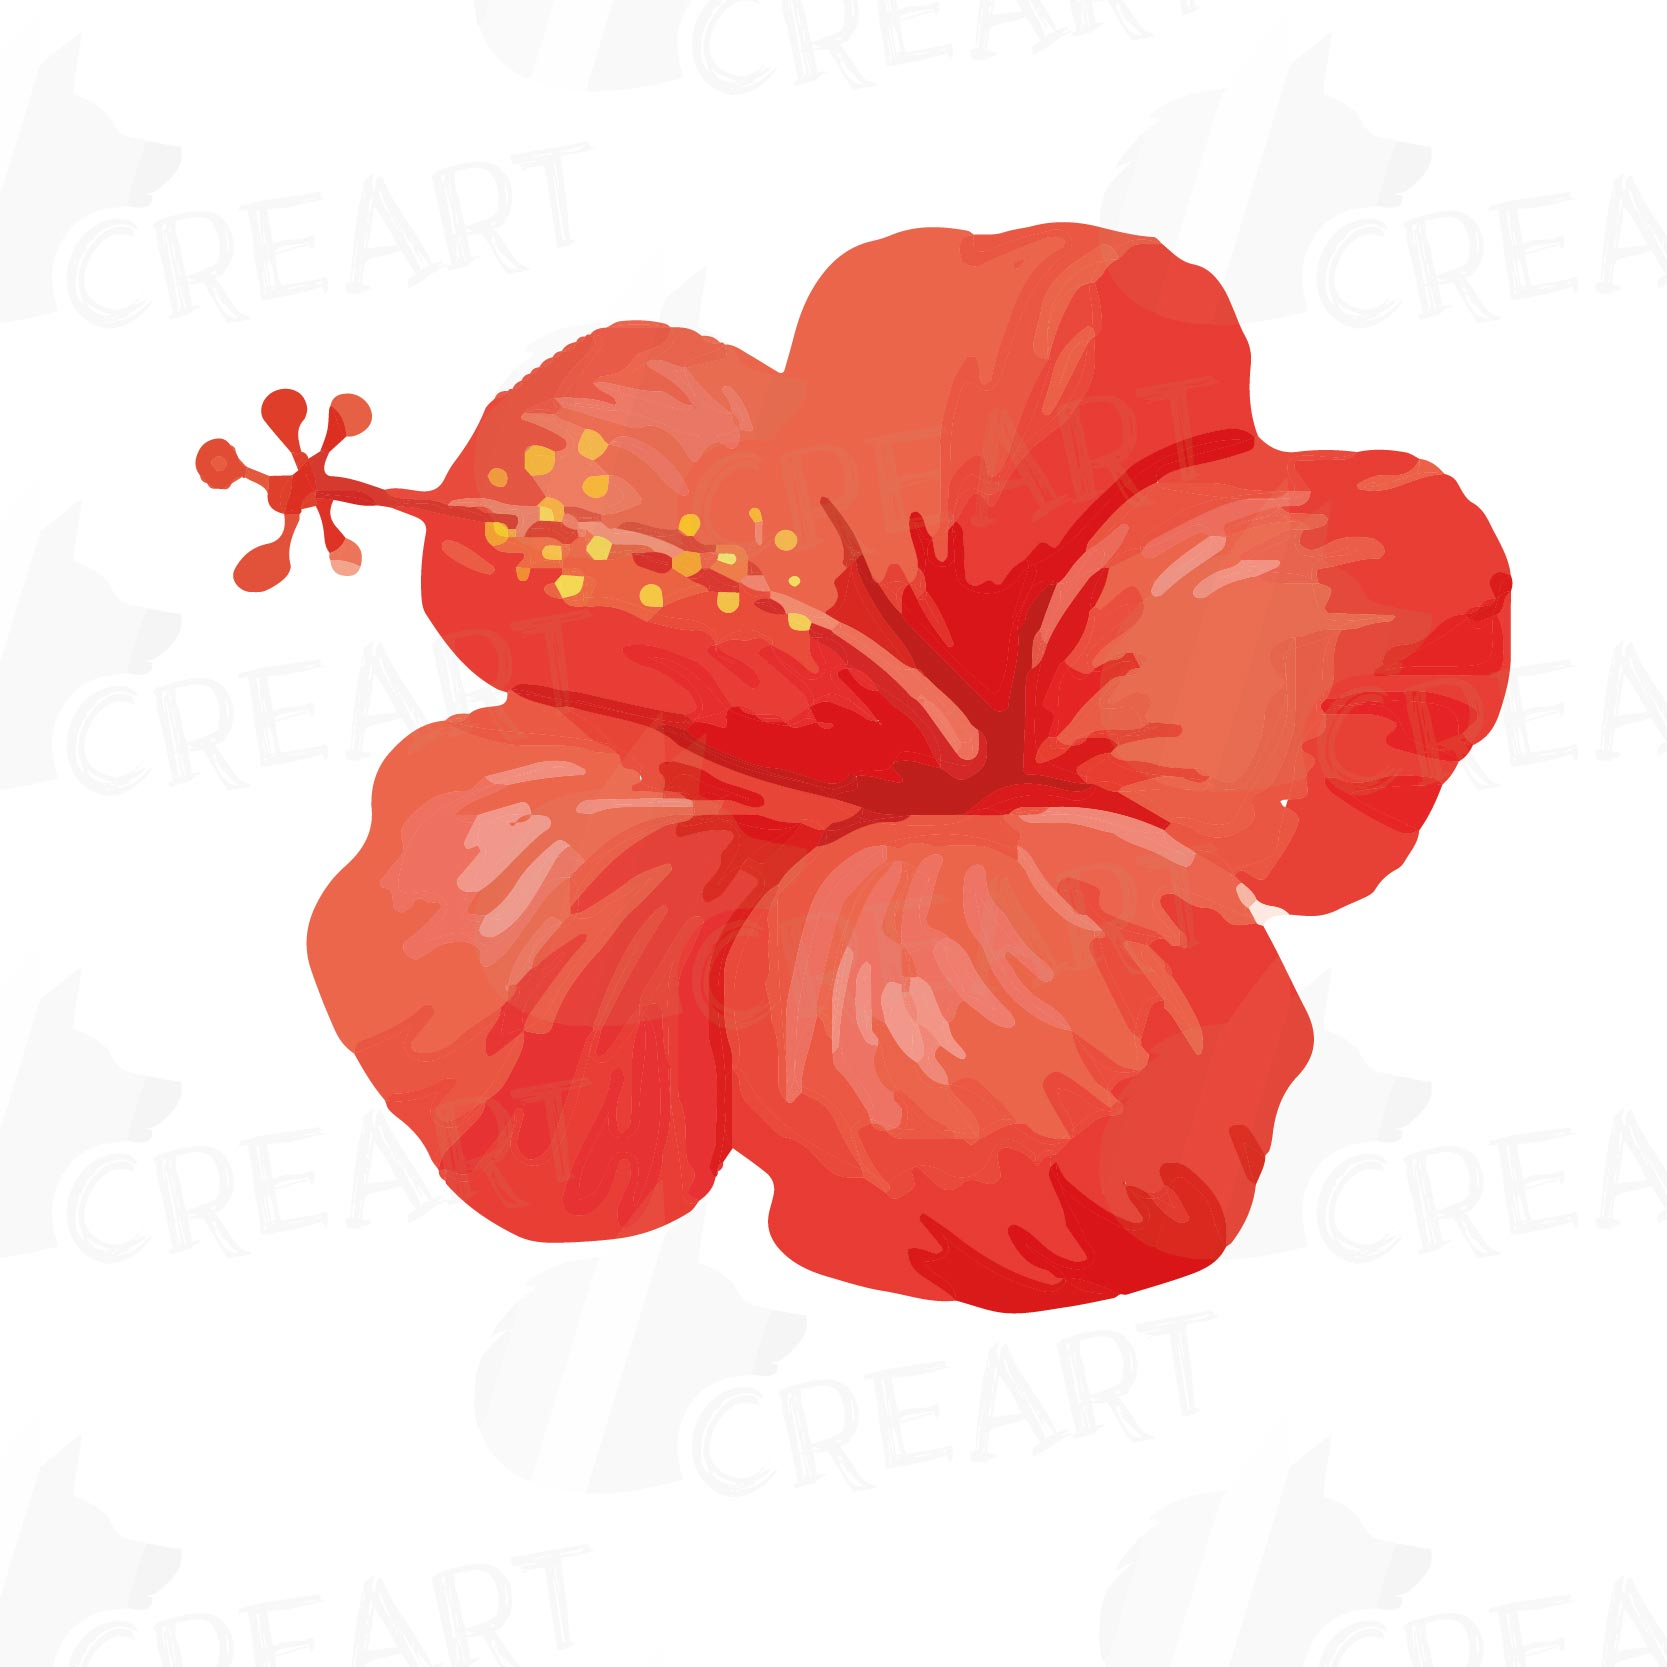 Exotic Flower Clipart At Getdrawings Free For Personal Use